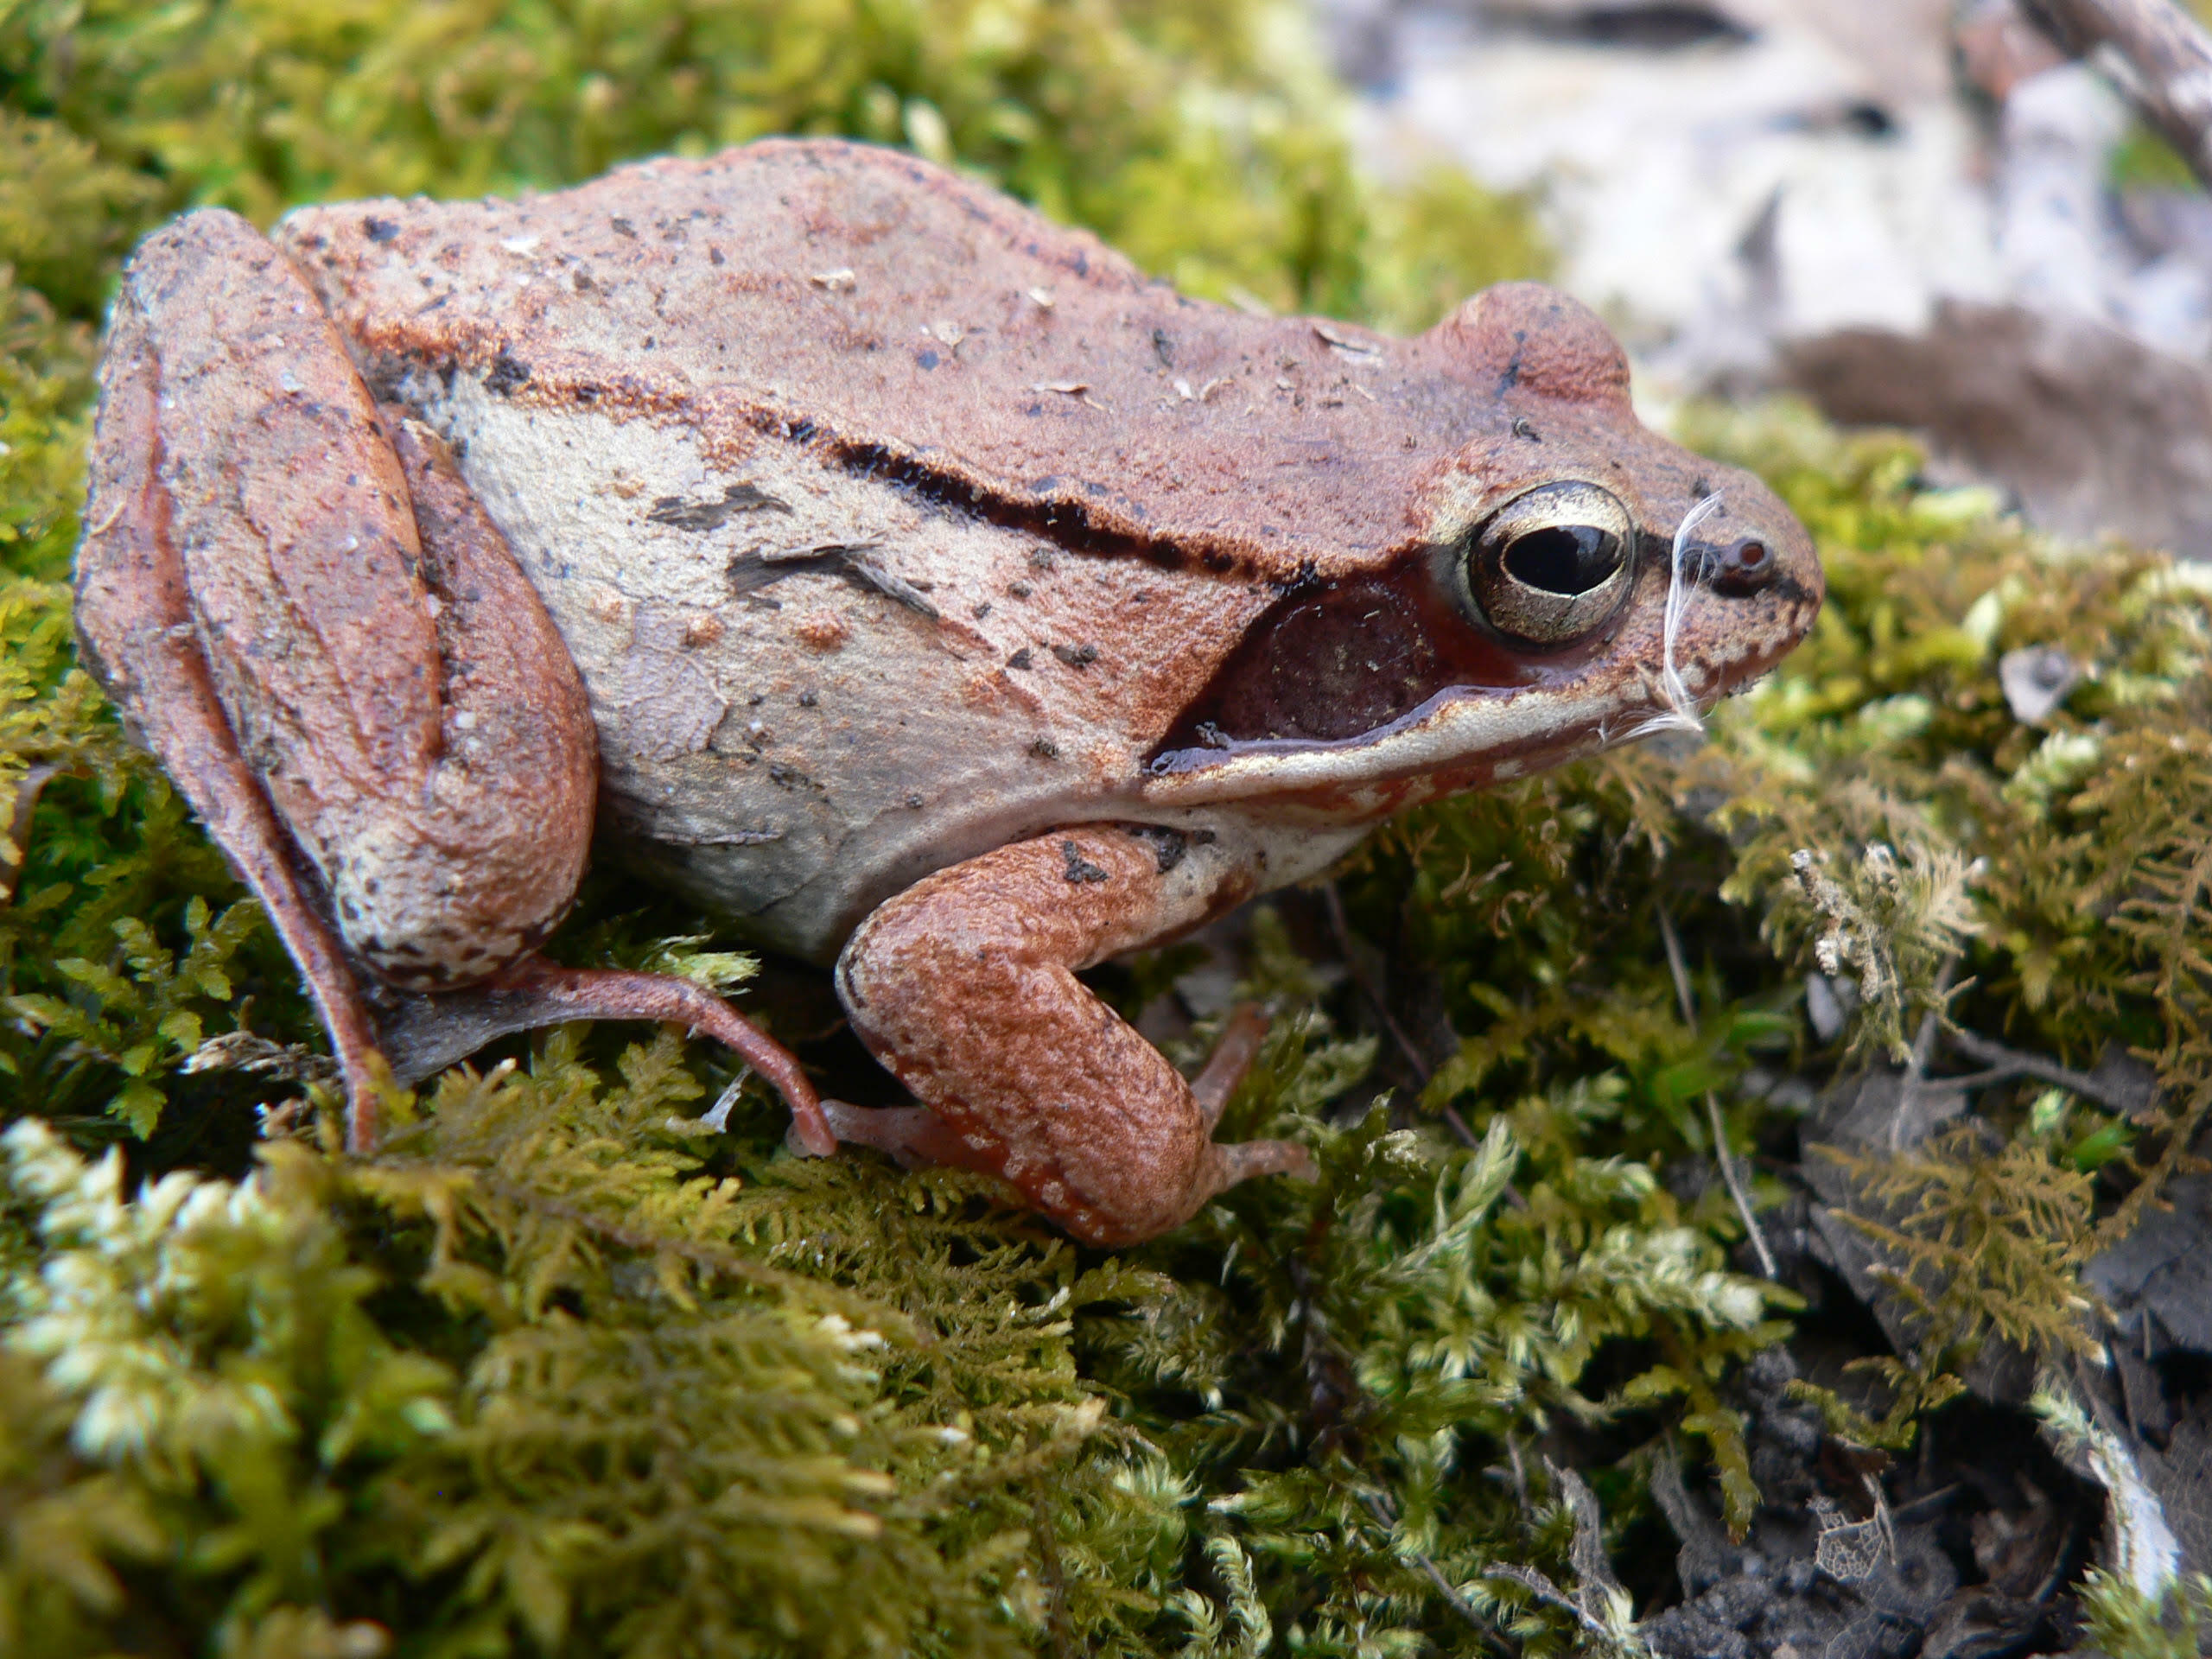 The wood frog is our earliest frog species to breed, its mating calls resembling a flock of ducks.